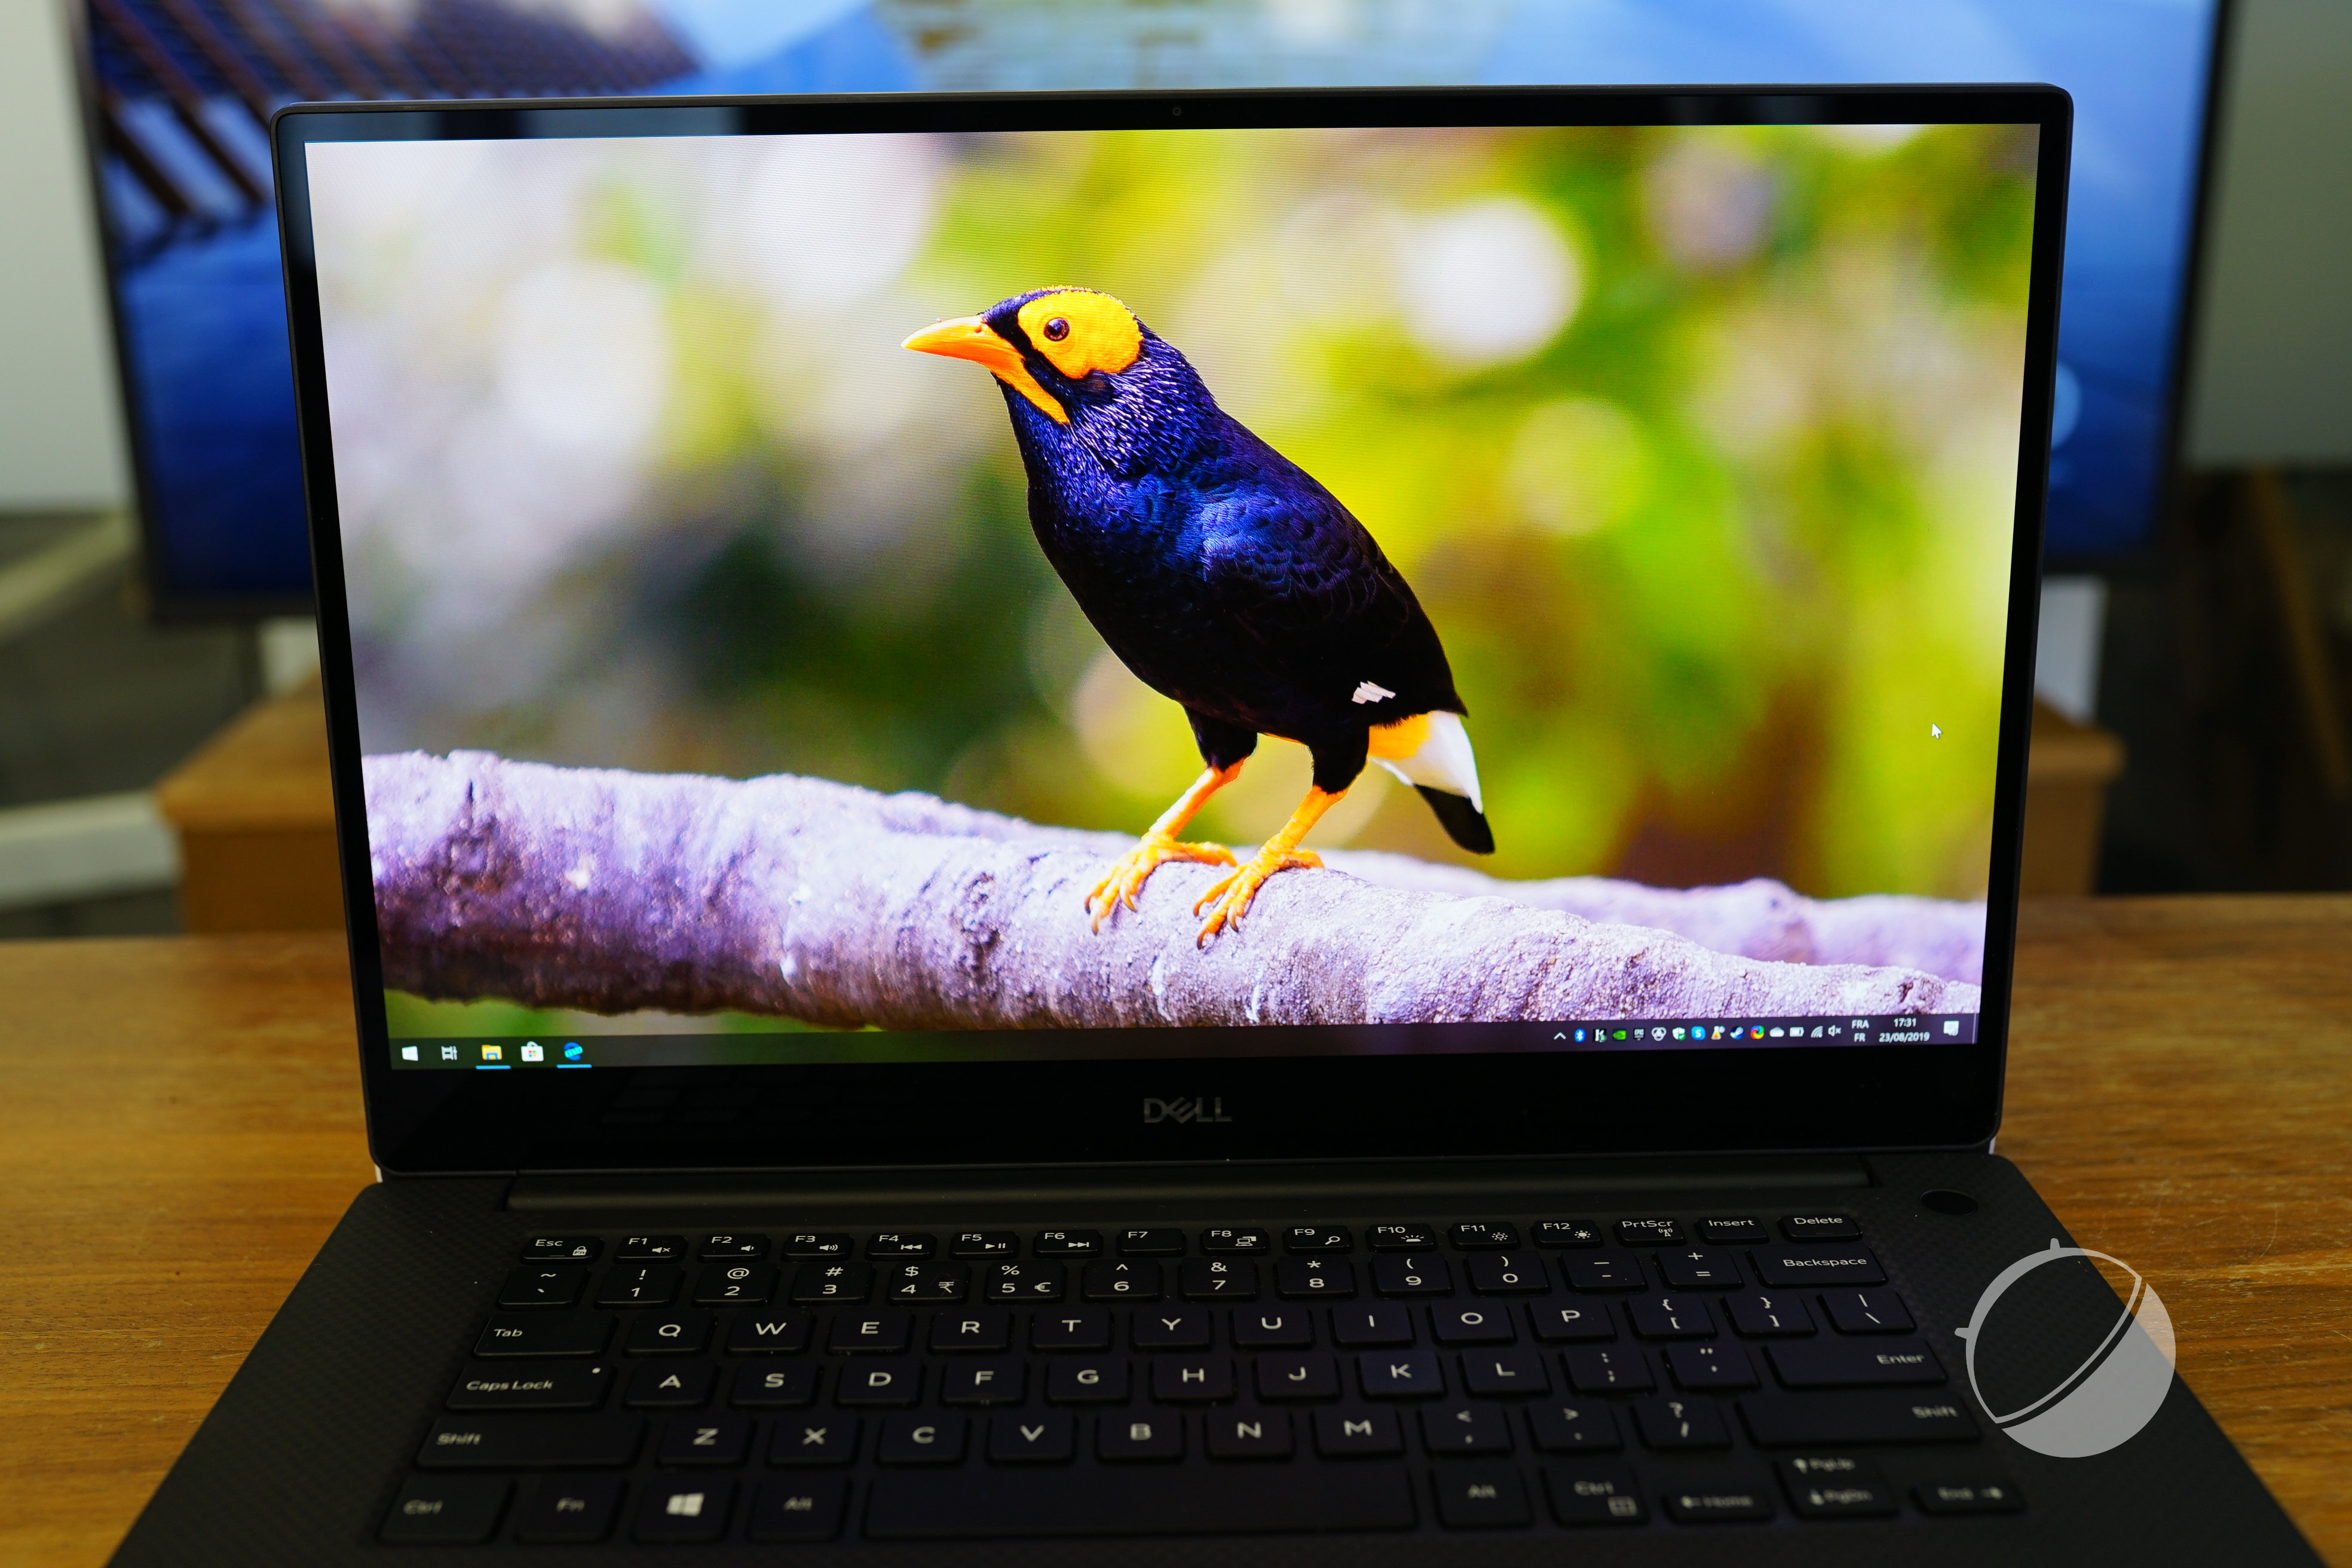 Dell XPS 15 7590 (OLED) test: the new market benchmark